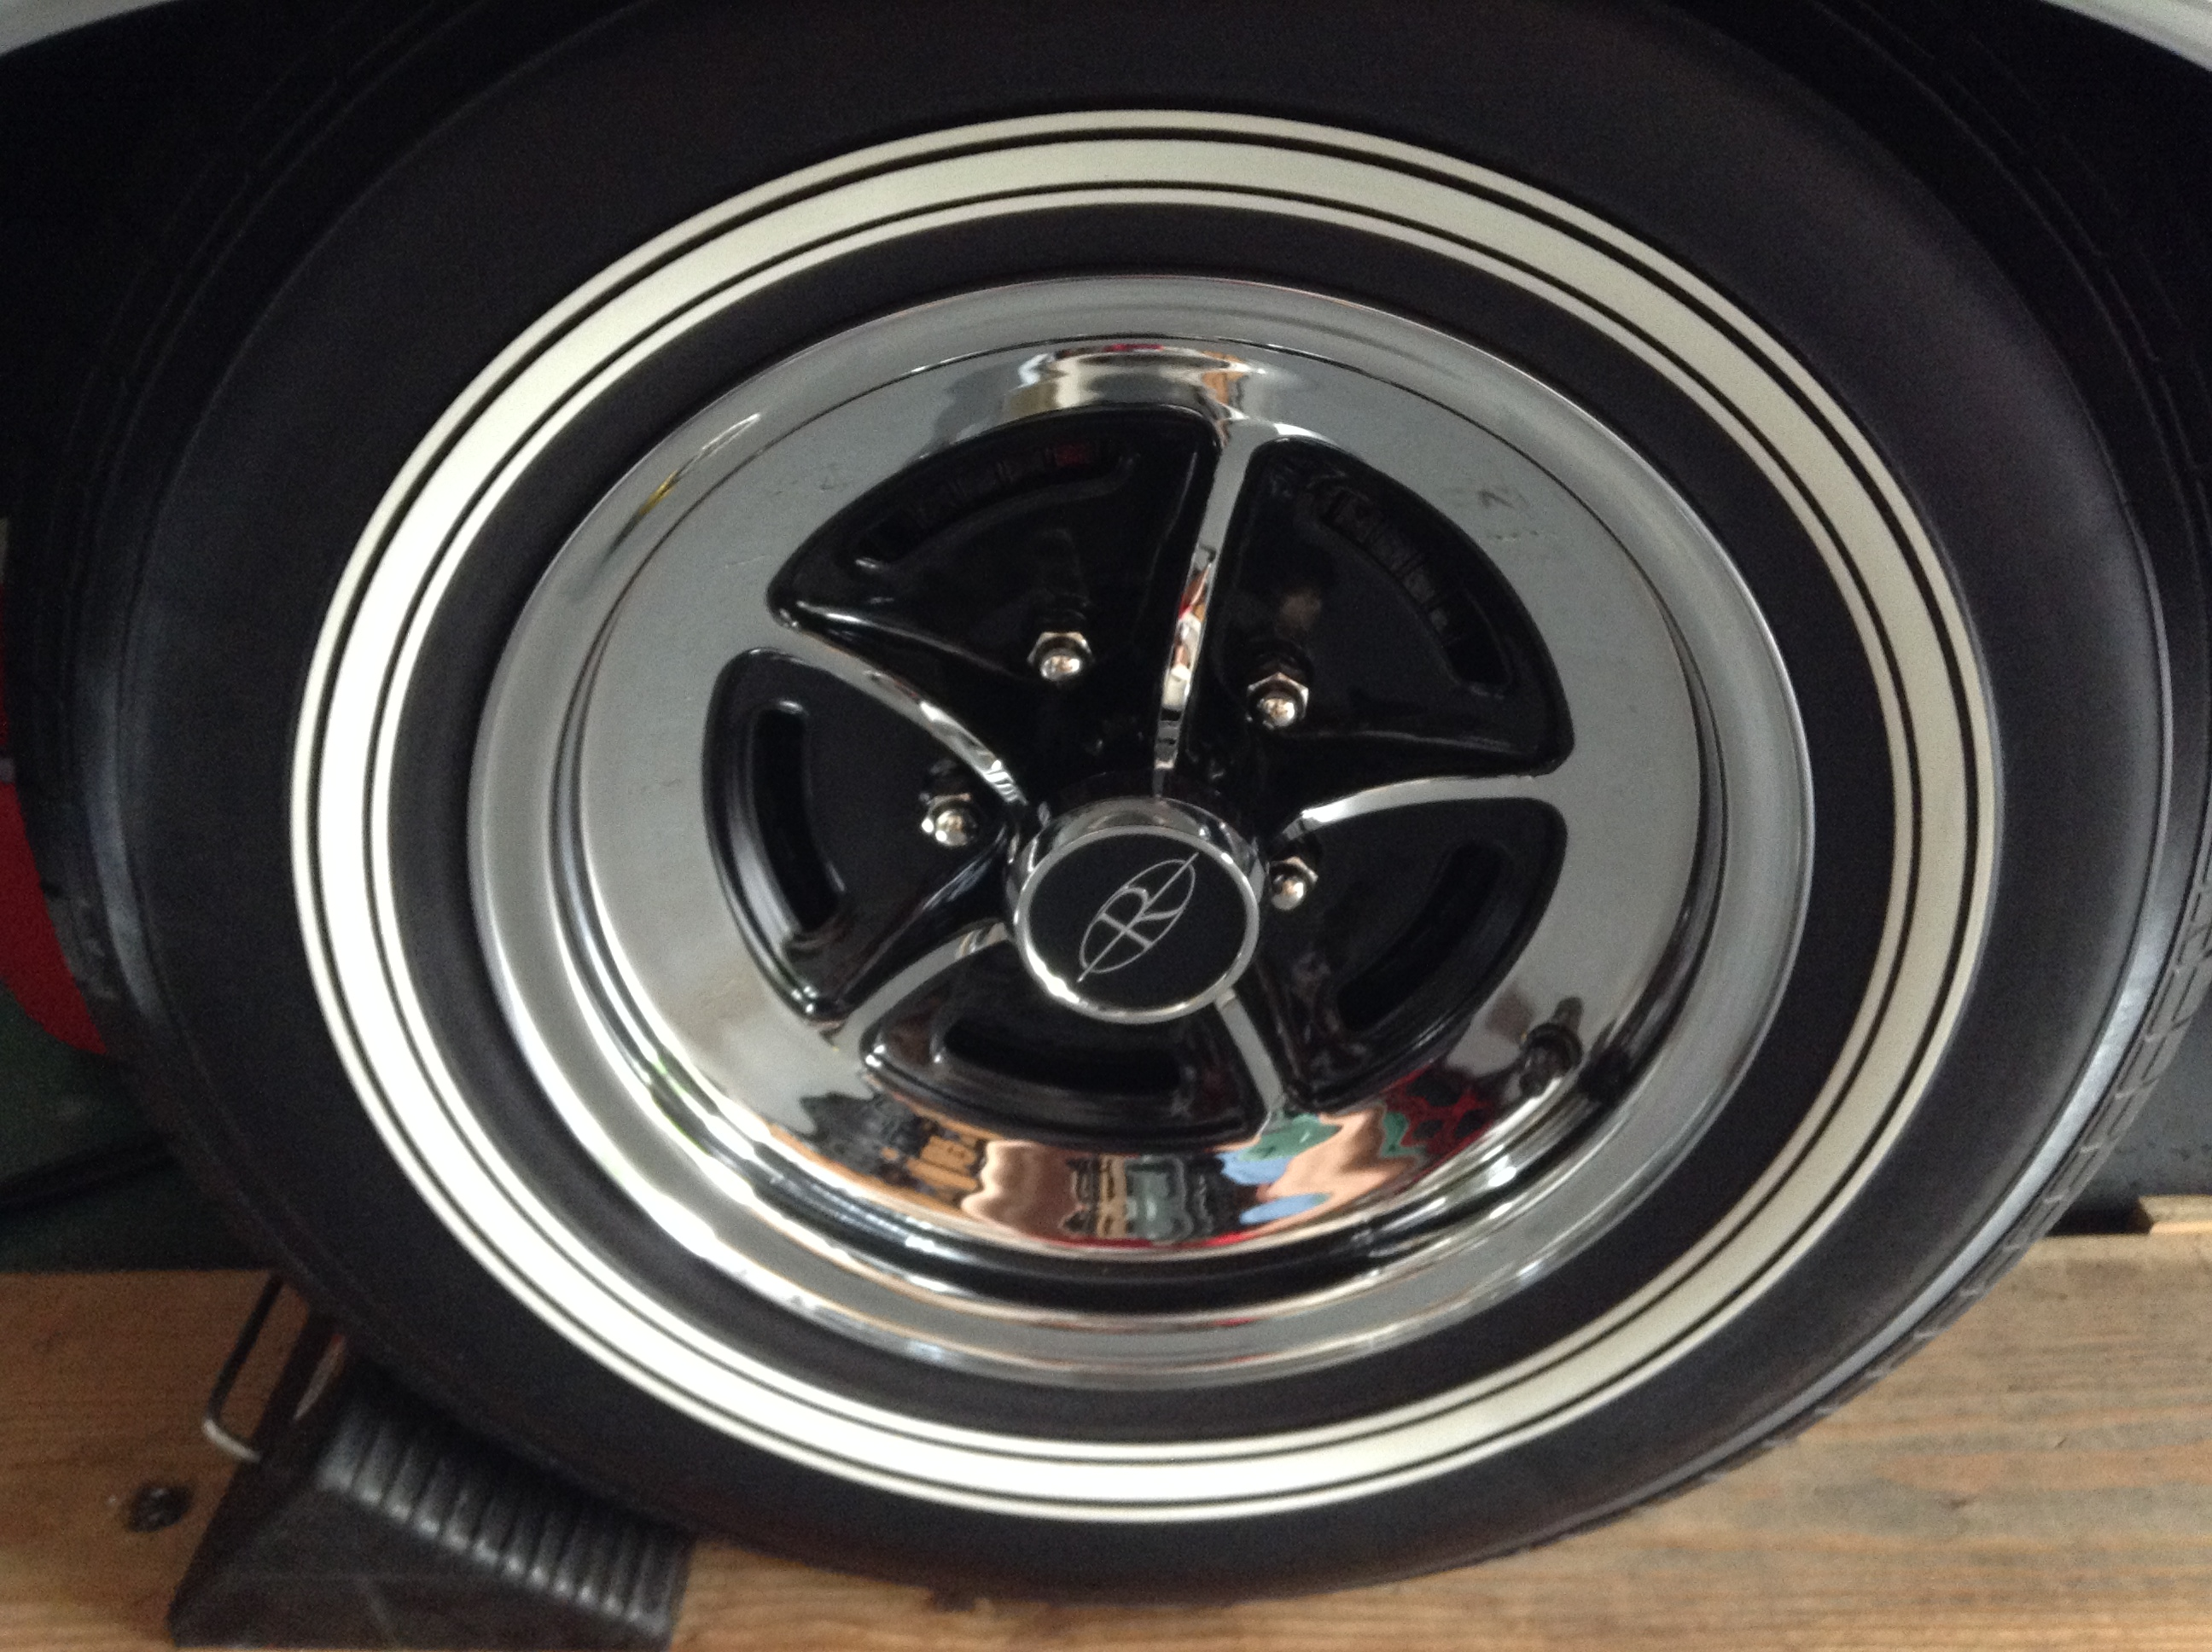 New Tires for my 65 - Buick Riviera - Riviera Owners Association ...